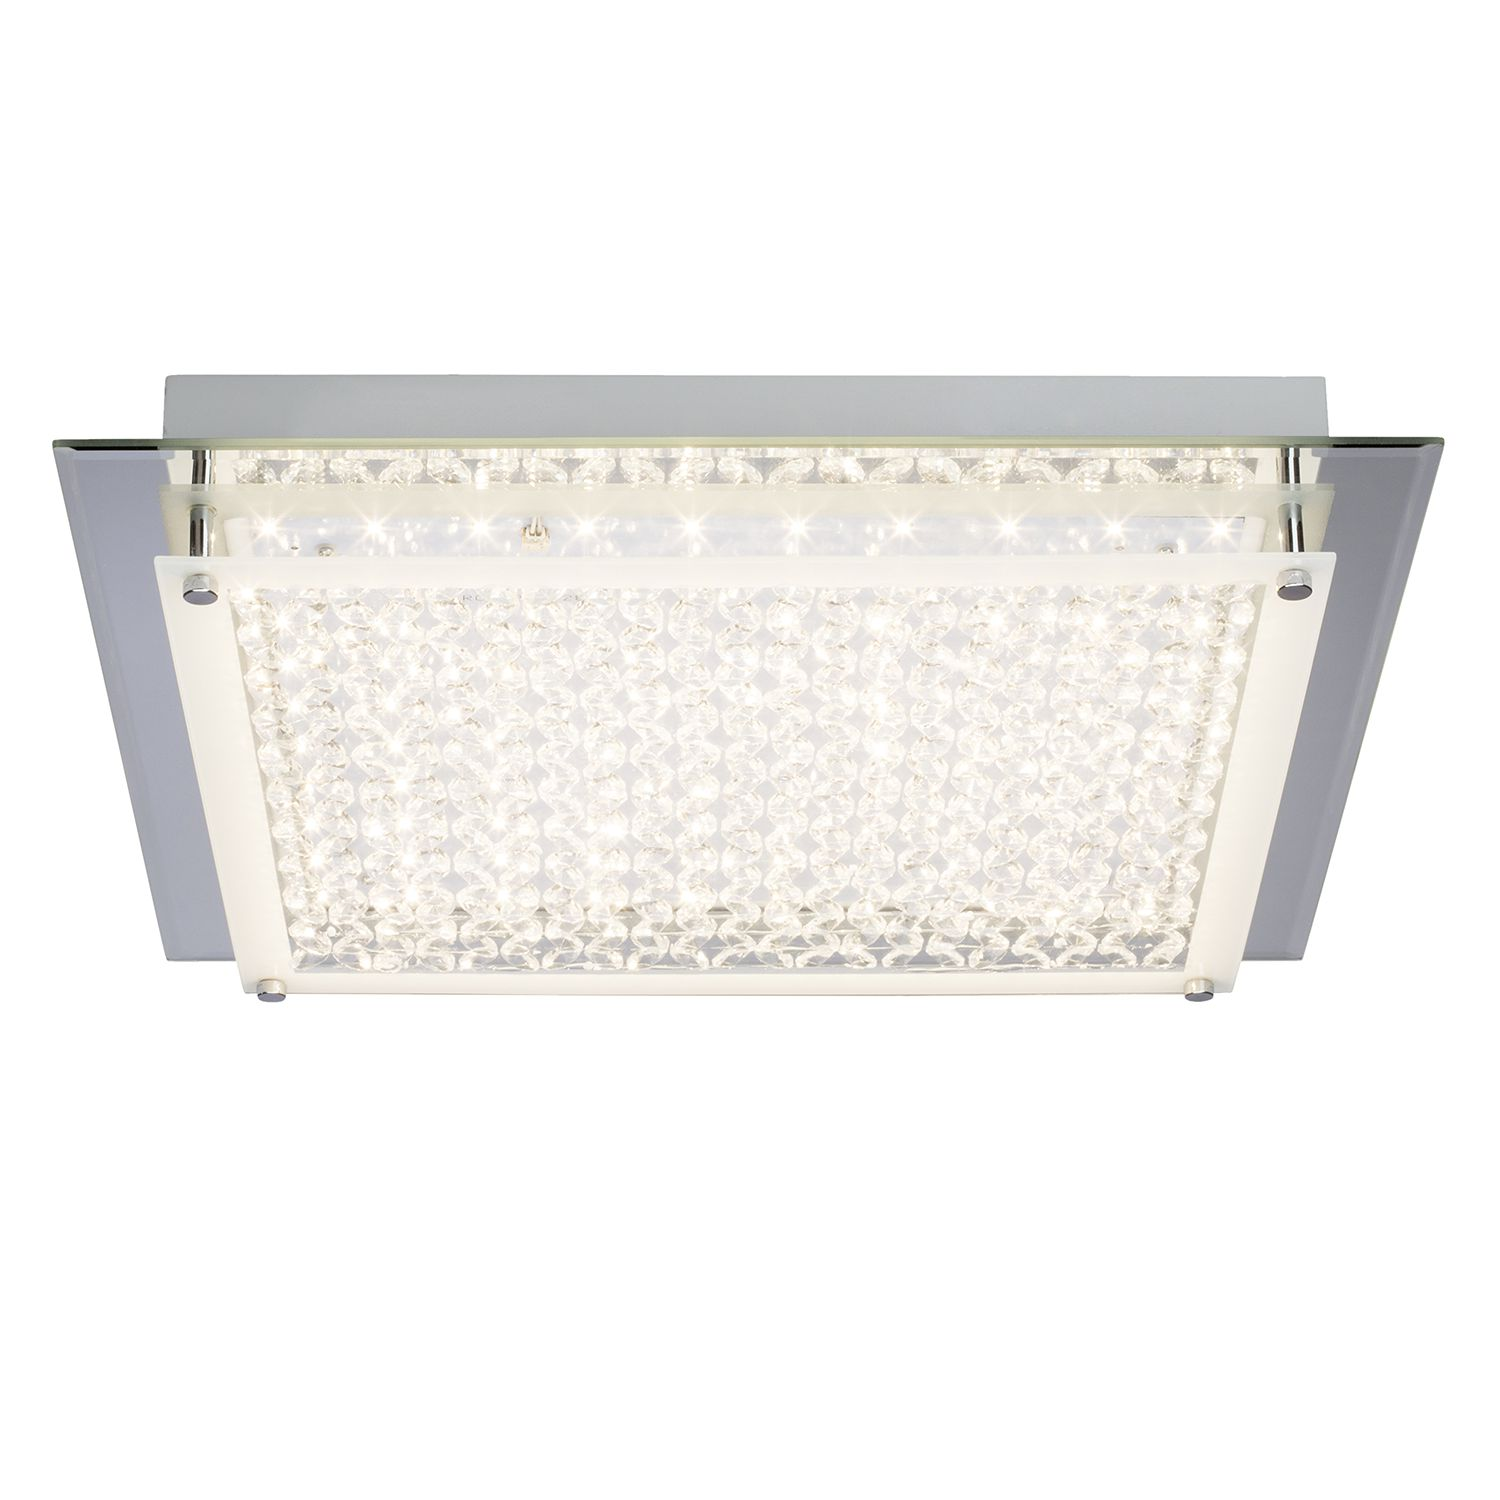 home24 LED-Deckenleuchte Larina Shine